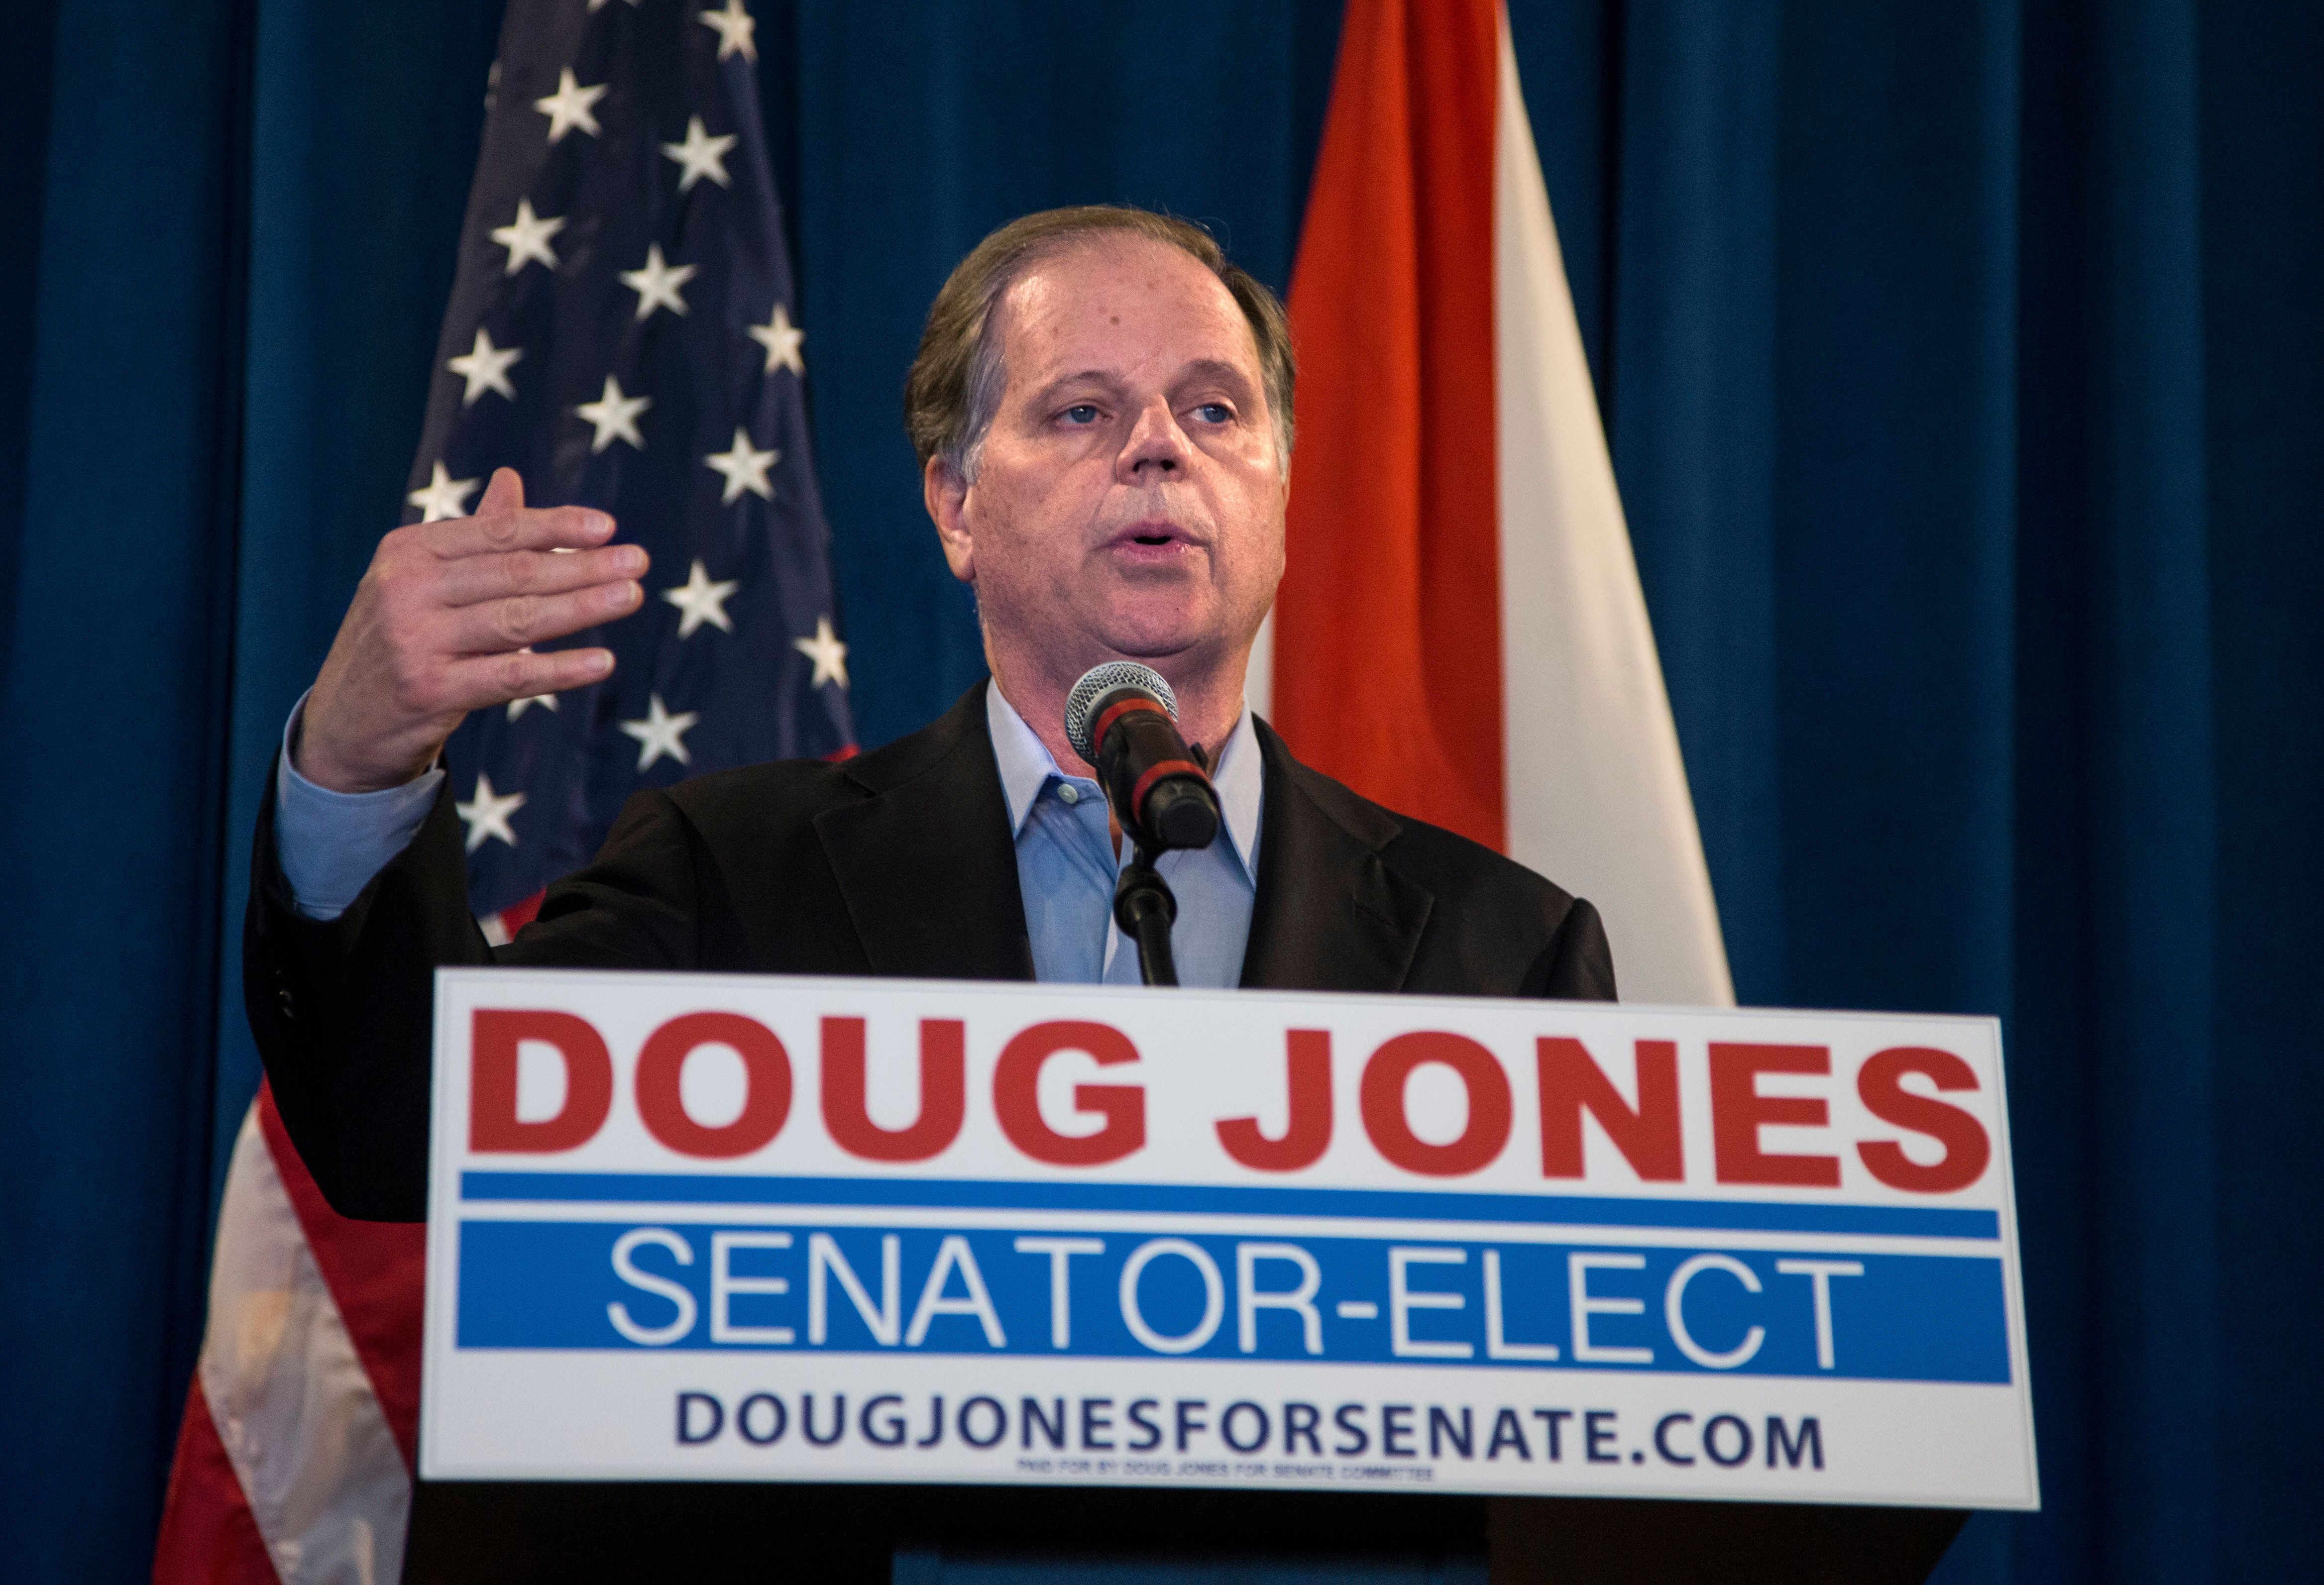 Senator-elect Doug Jones (D-Ala.) speaks to reporters on Dec. 13, 2017, the day after his upset victory in a special election